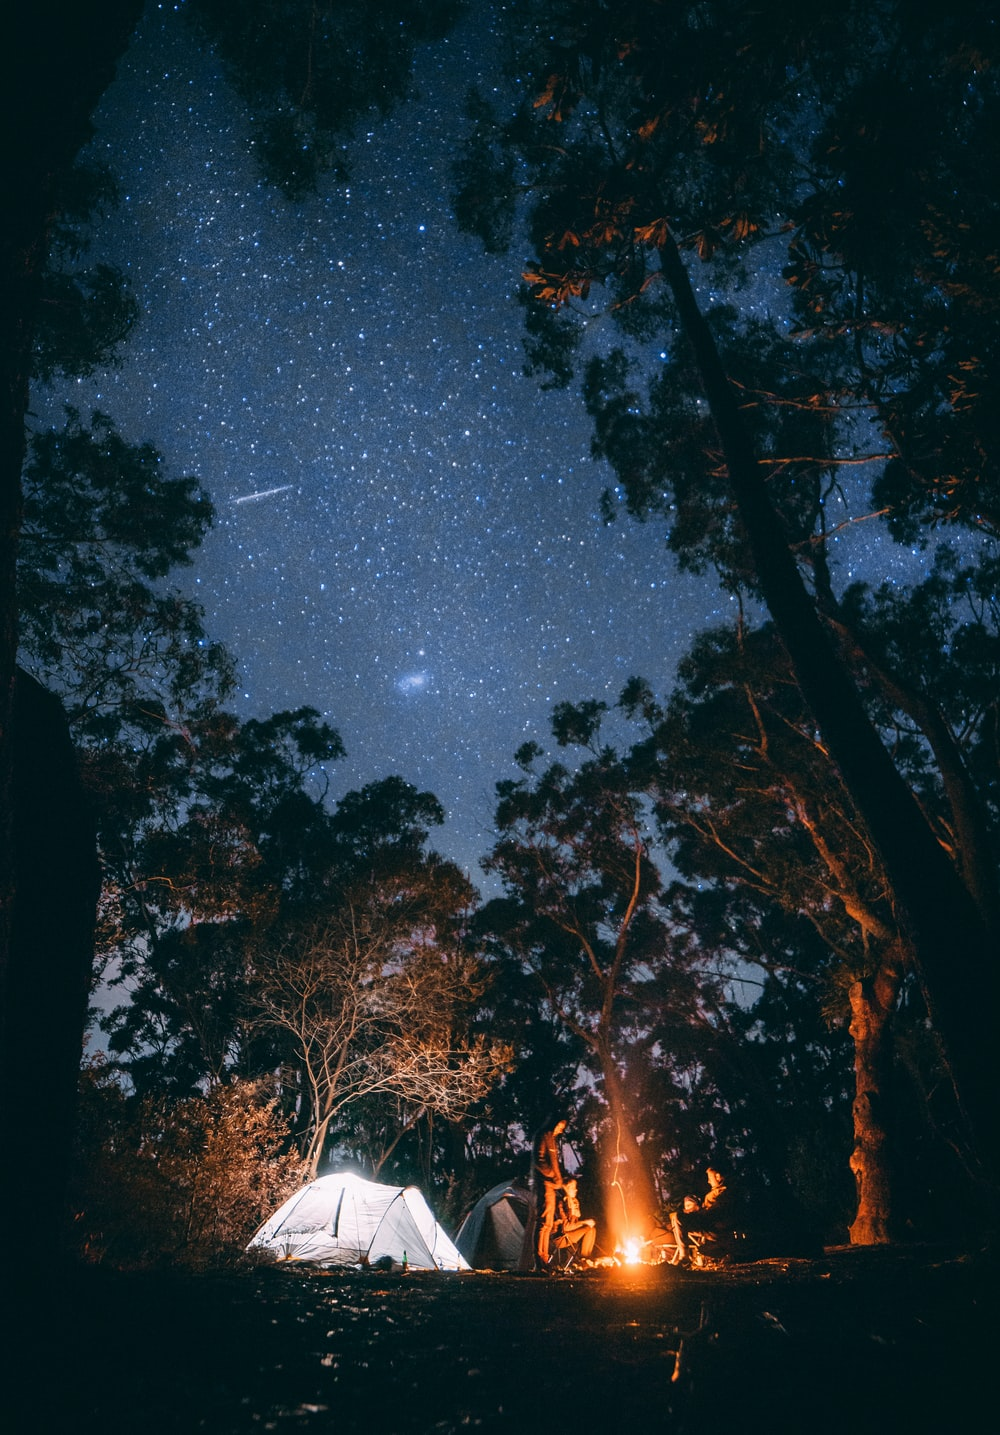 person sitting near bonfire surrounded by trees